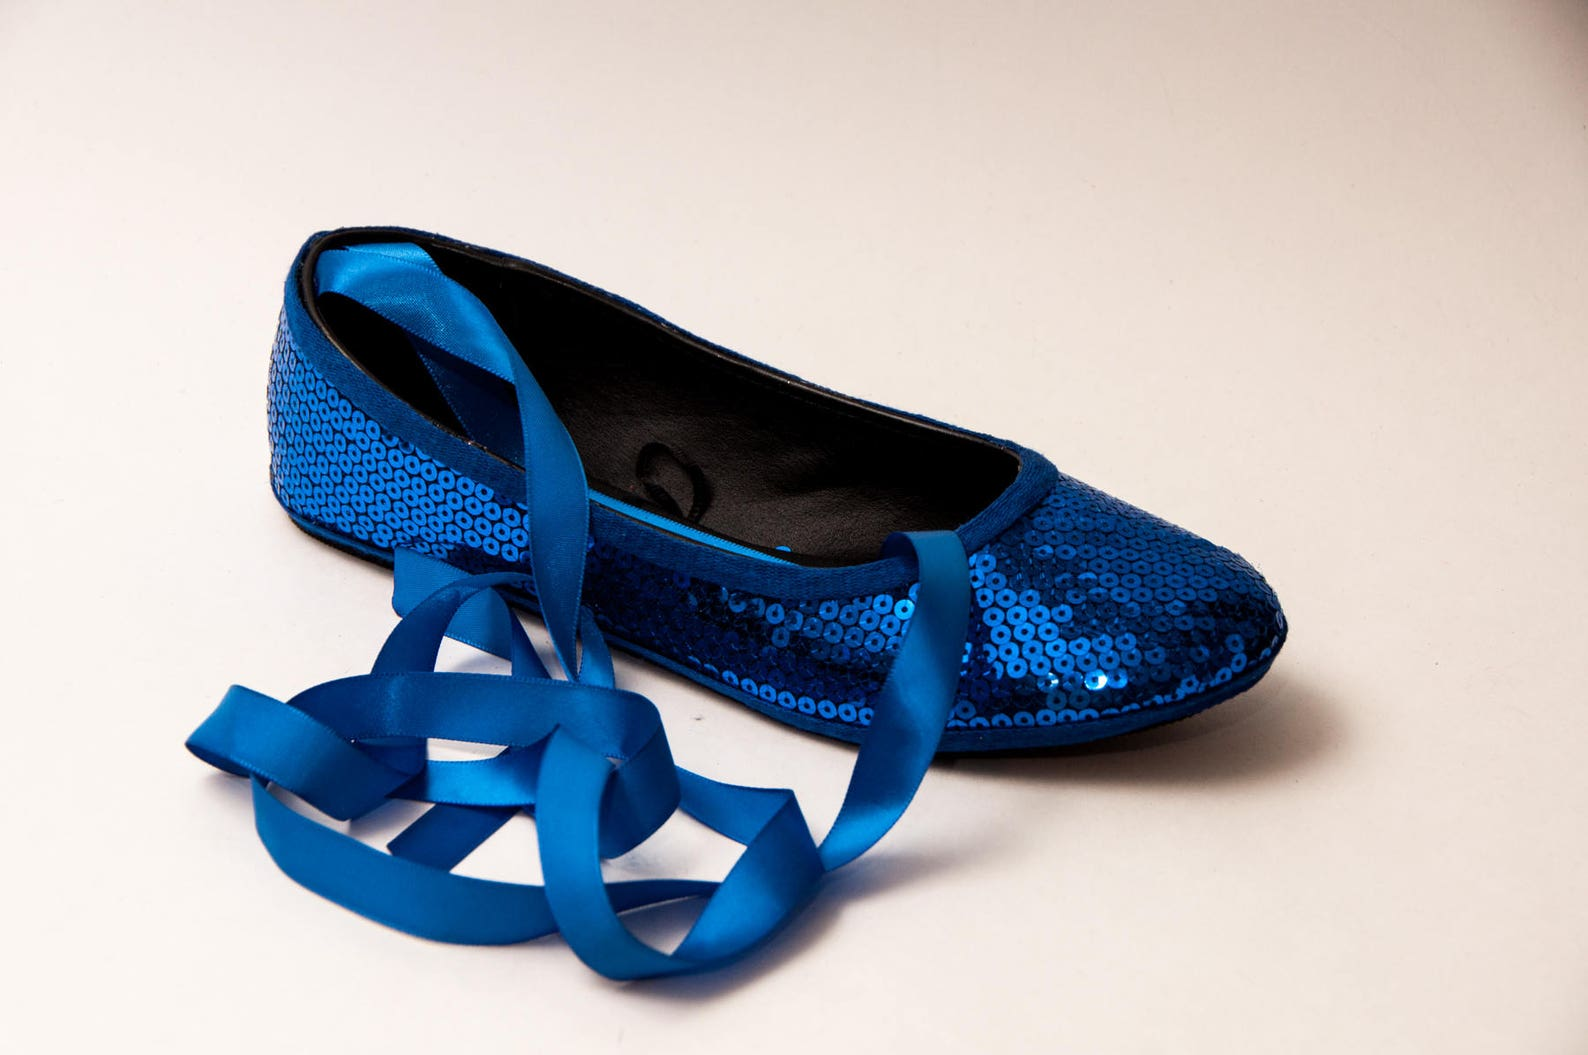 bridal - sequin sapphire blue ballet flats slippers shoes with matching ribbons